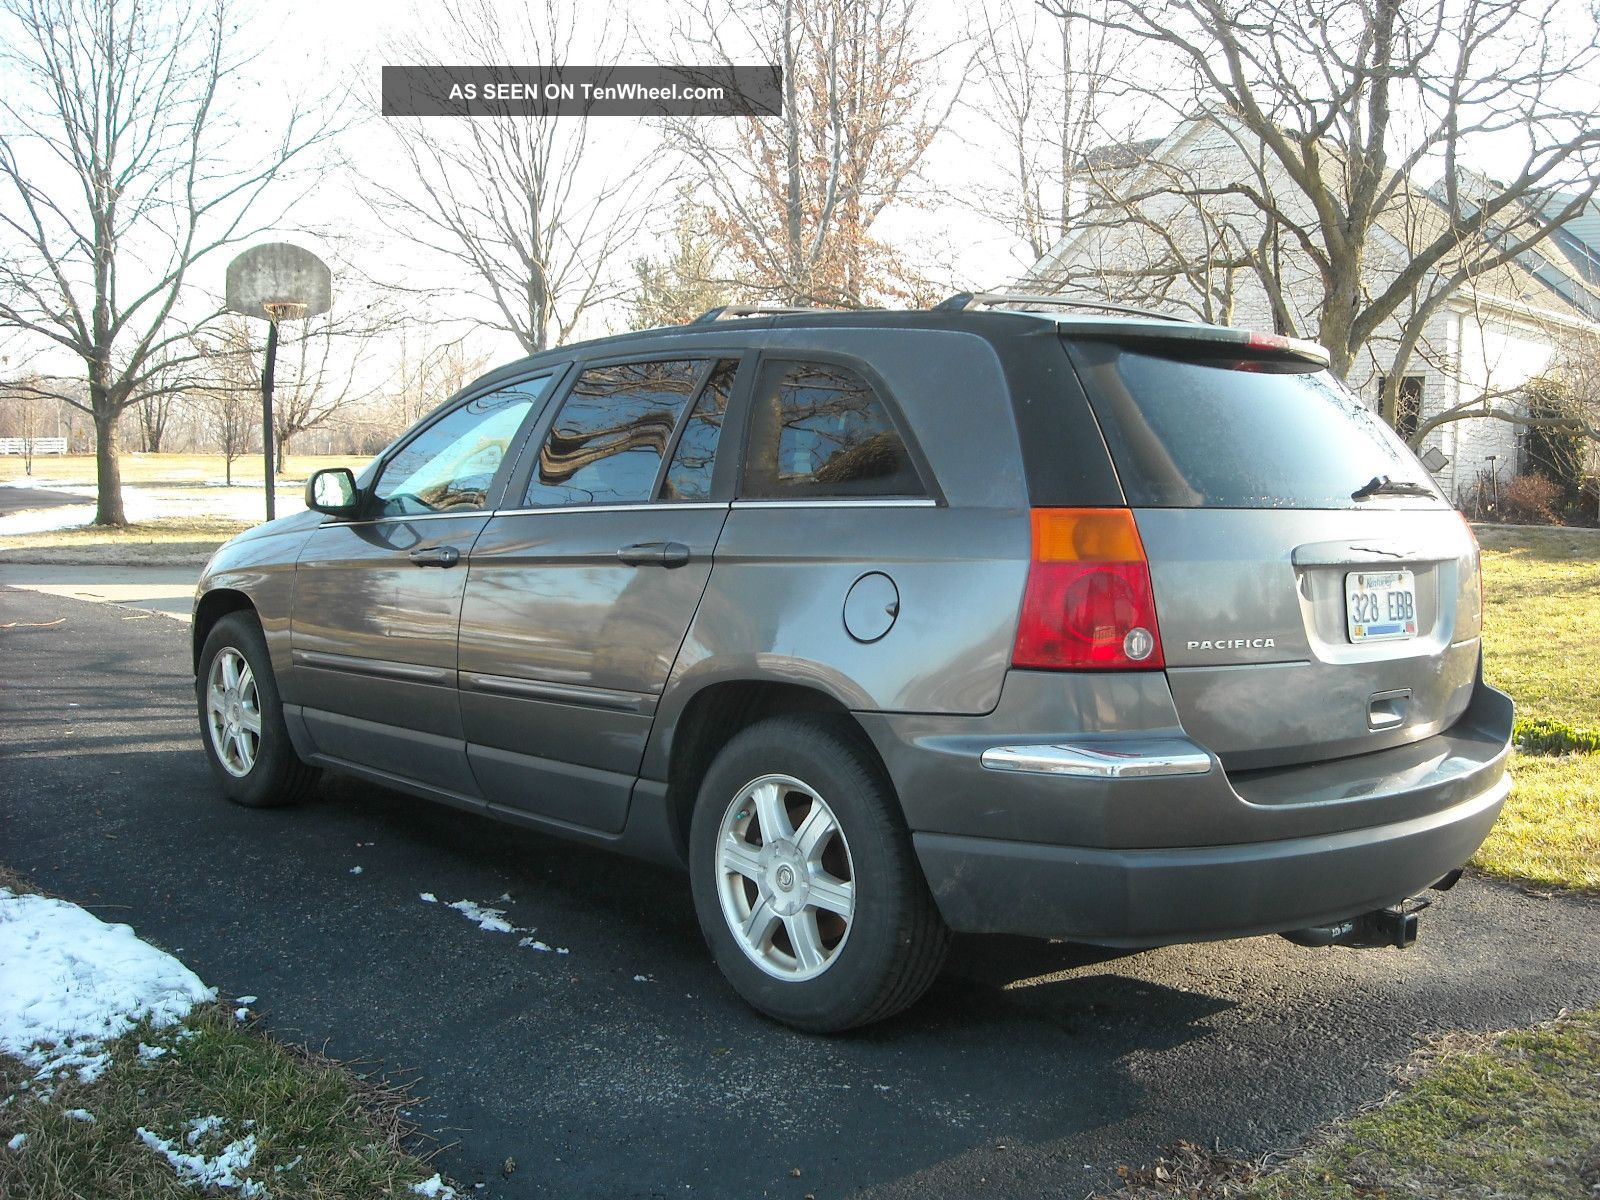 2004 chrysler pacifica touring sport utility 4 door 3 5l awd broken. Cars Review. Best American Auto & Cars Review